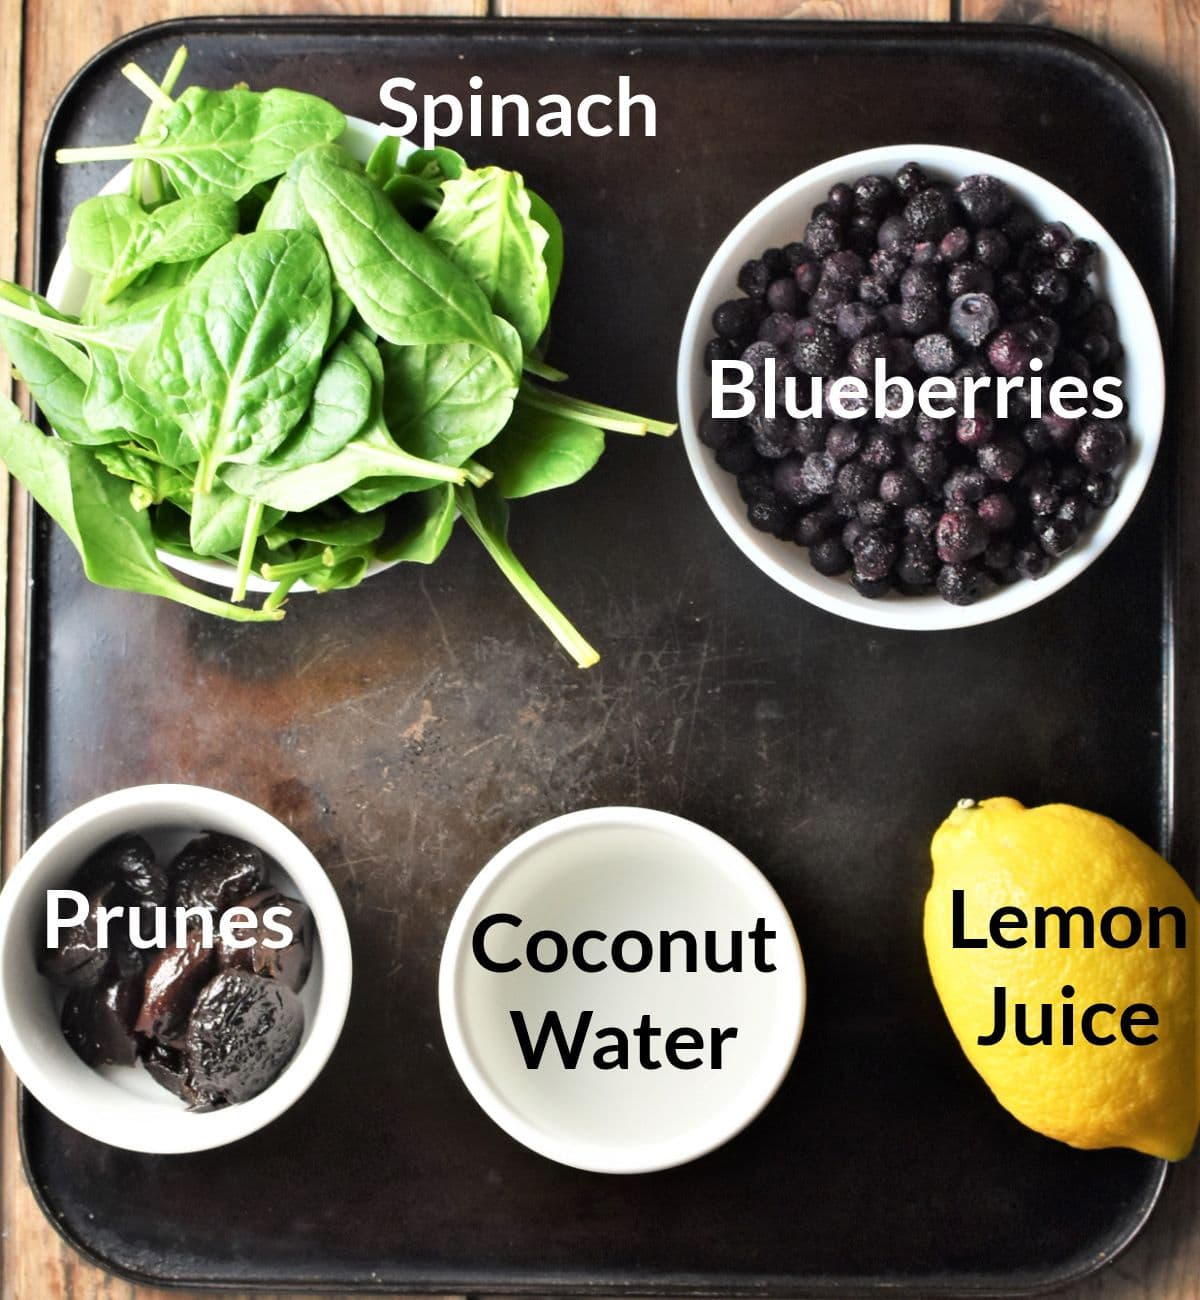 Ingredients for making spinach and blueberry smoothie in individual dishes.